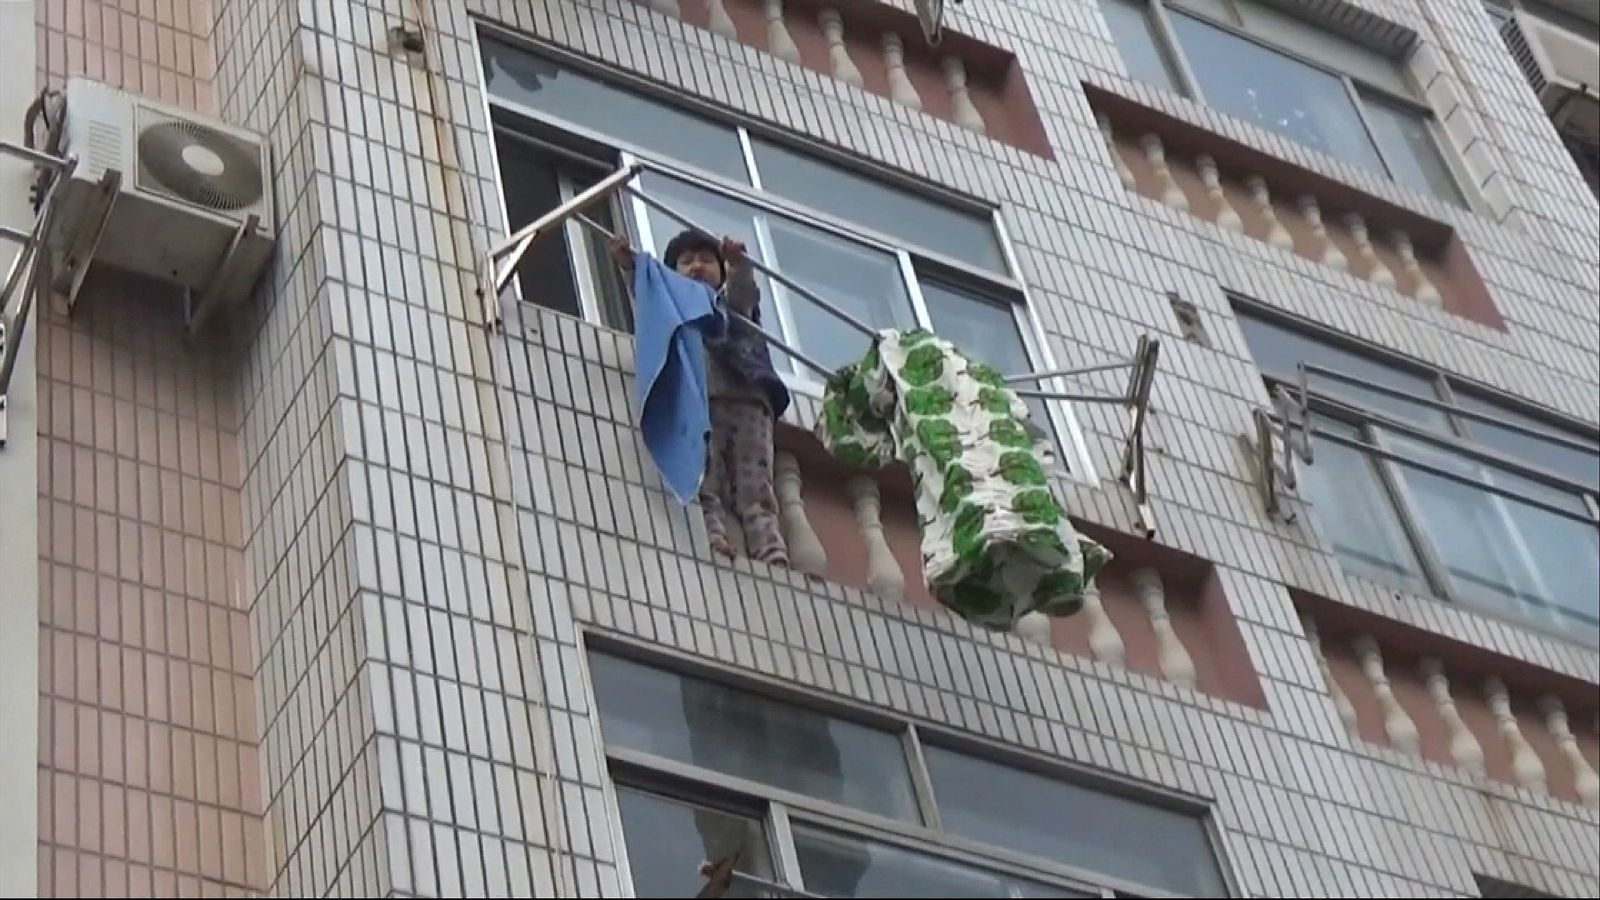 A five-year-old girl who fell from a fourth floor of a building in Qingdao, China, was rescued by firefighters after getting caught by a laundry rack